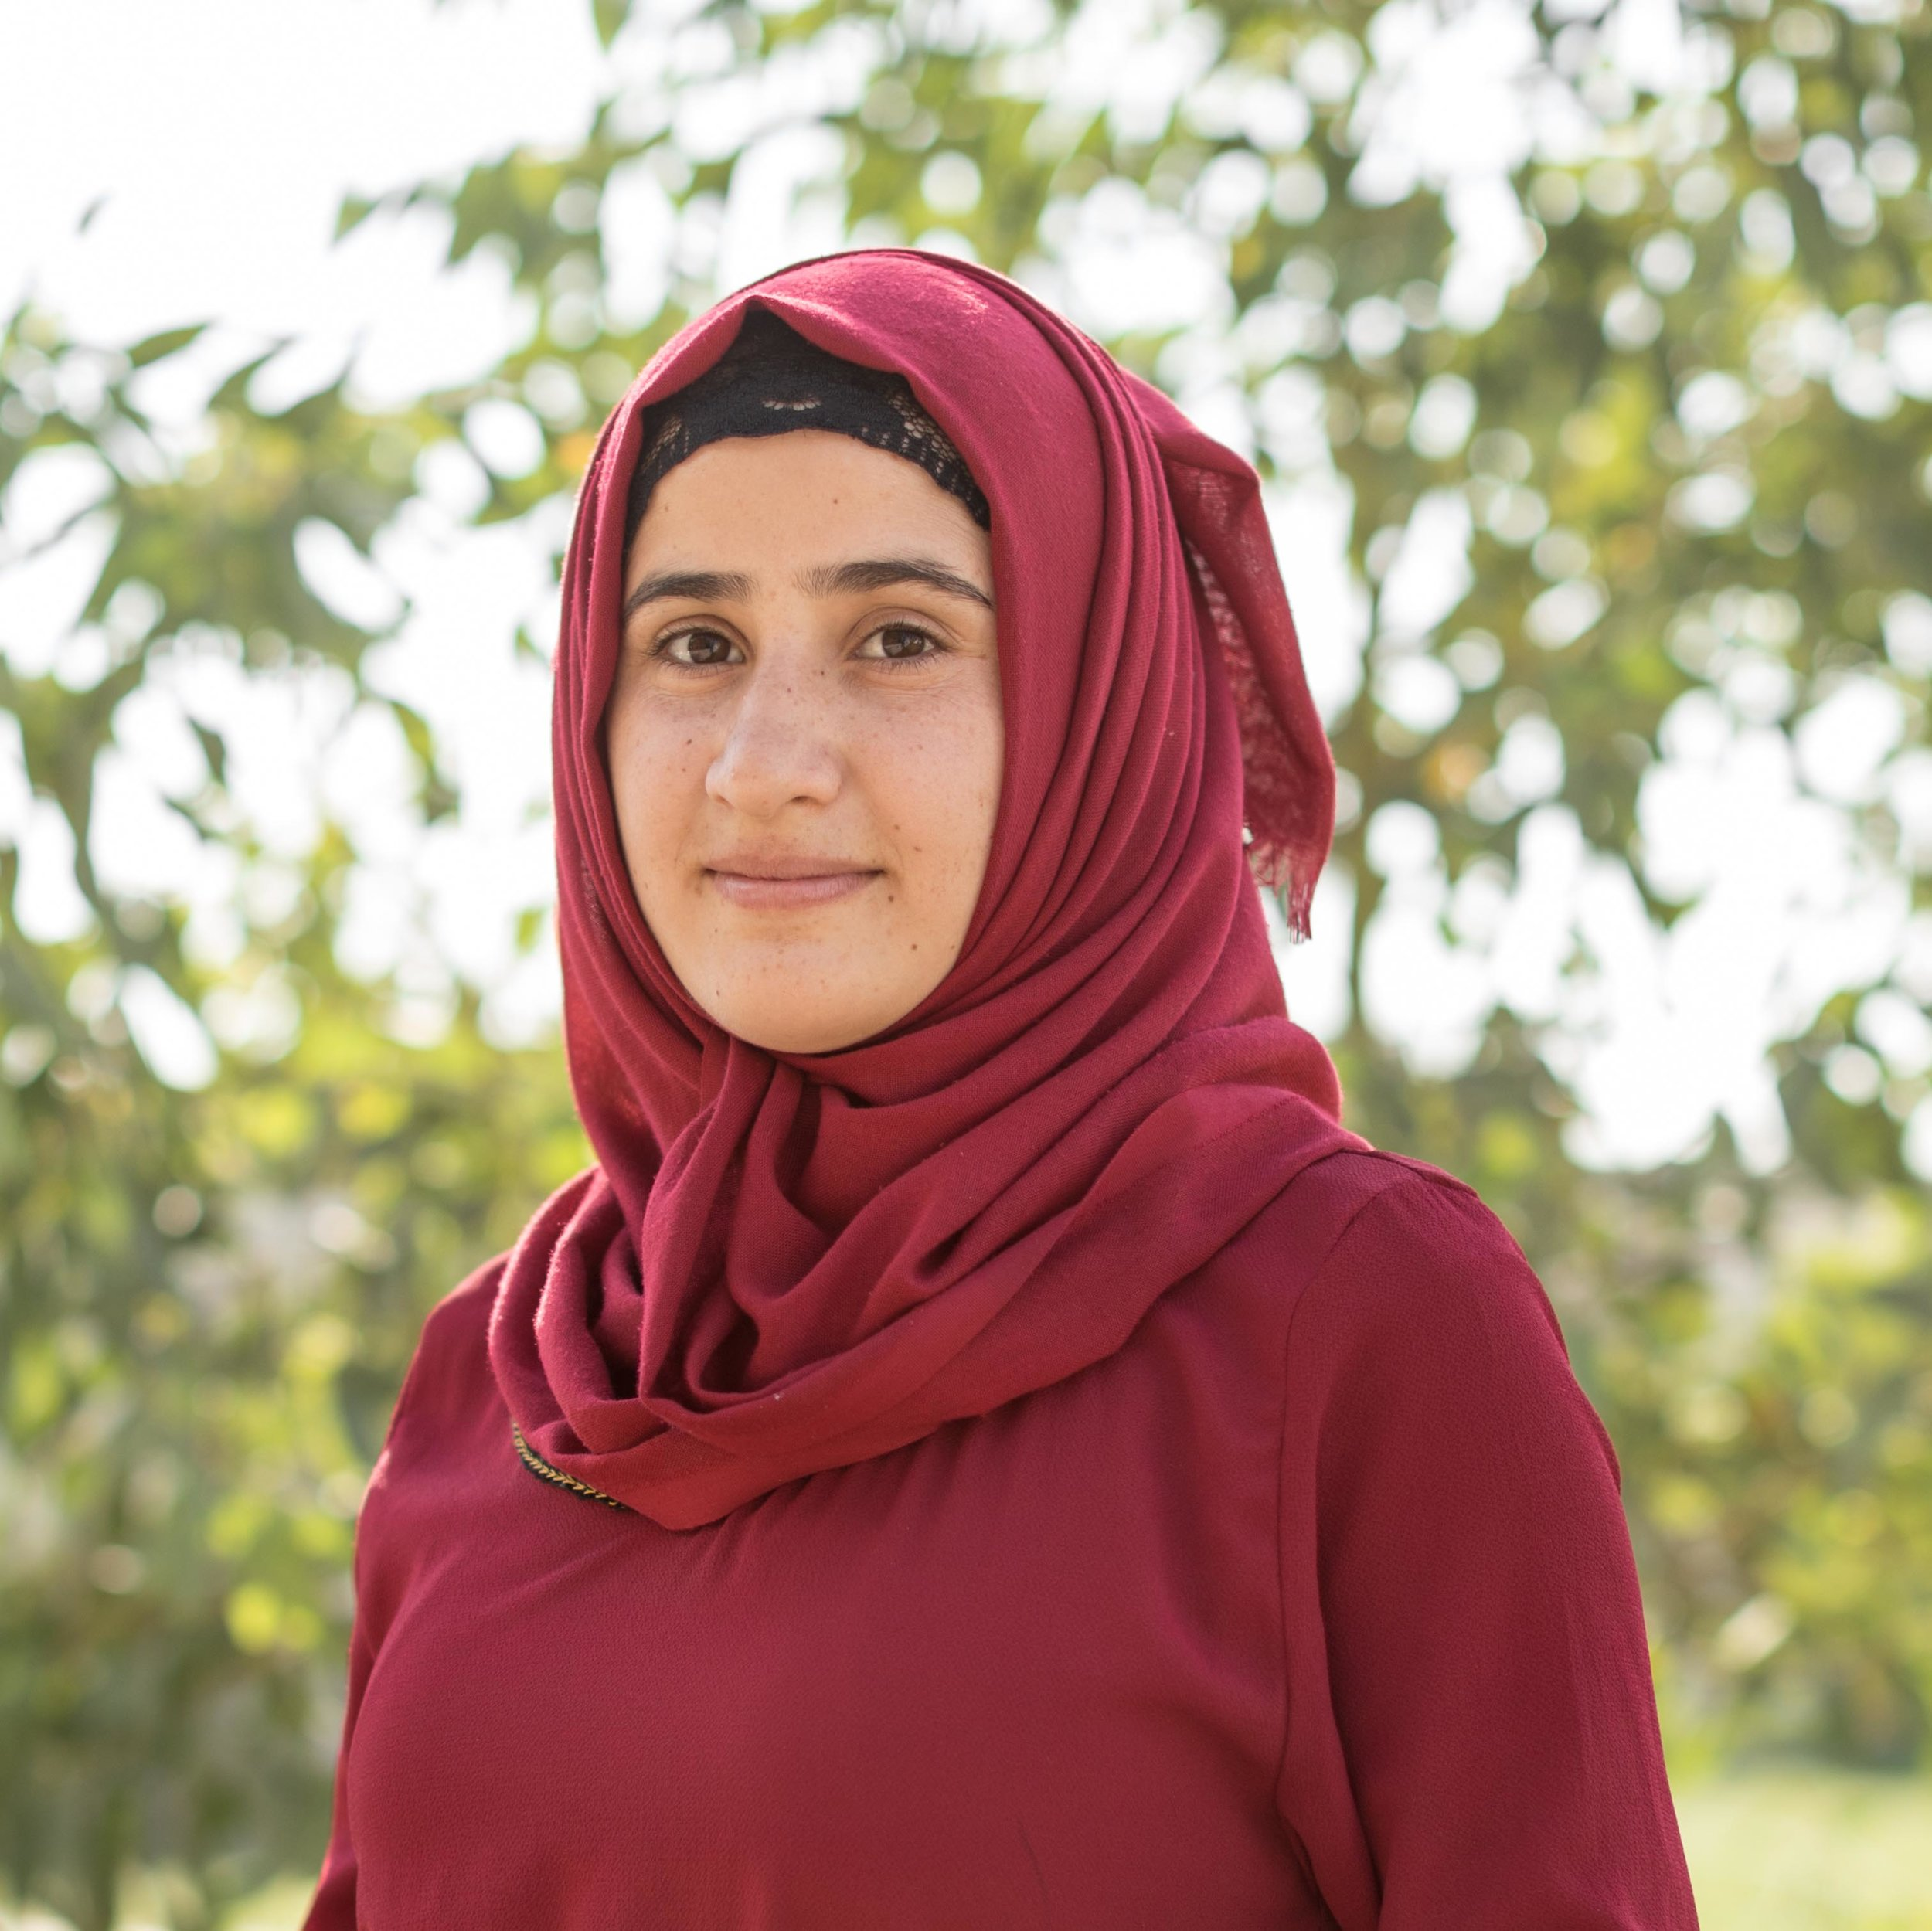 Miaad Yousif - Social CoordinatorMiaad, originally from Sinjar, has been a community volunteer with Lotus Flower since December 2016. Recently accepted to the Department of Psychology at Duhok University, she conducts English for Beginners and literacy courses for women at the Lotus Flower Women's Centre.